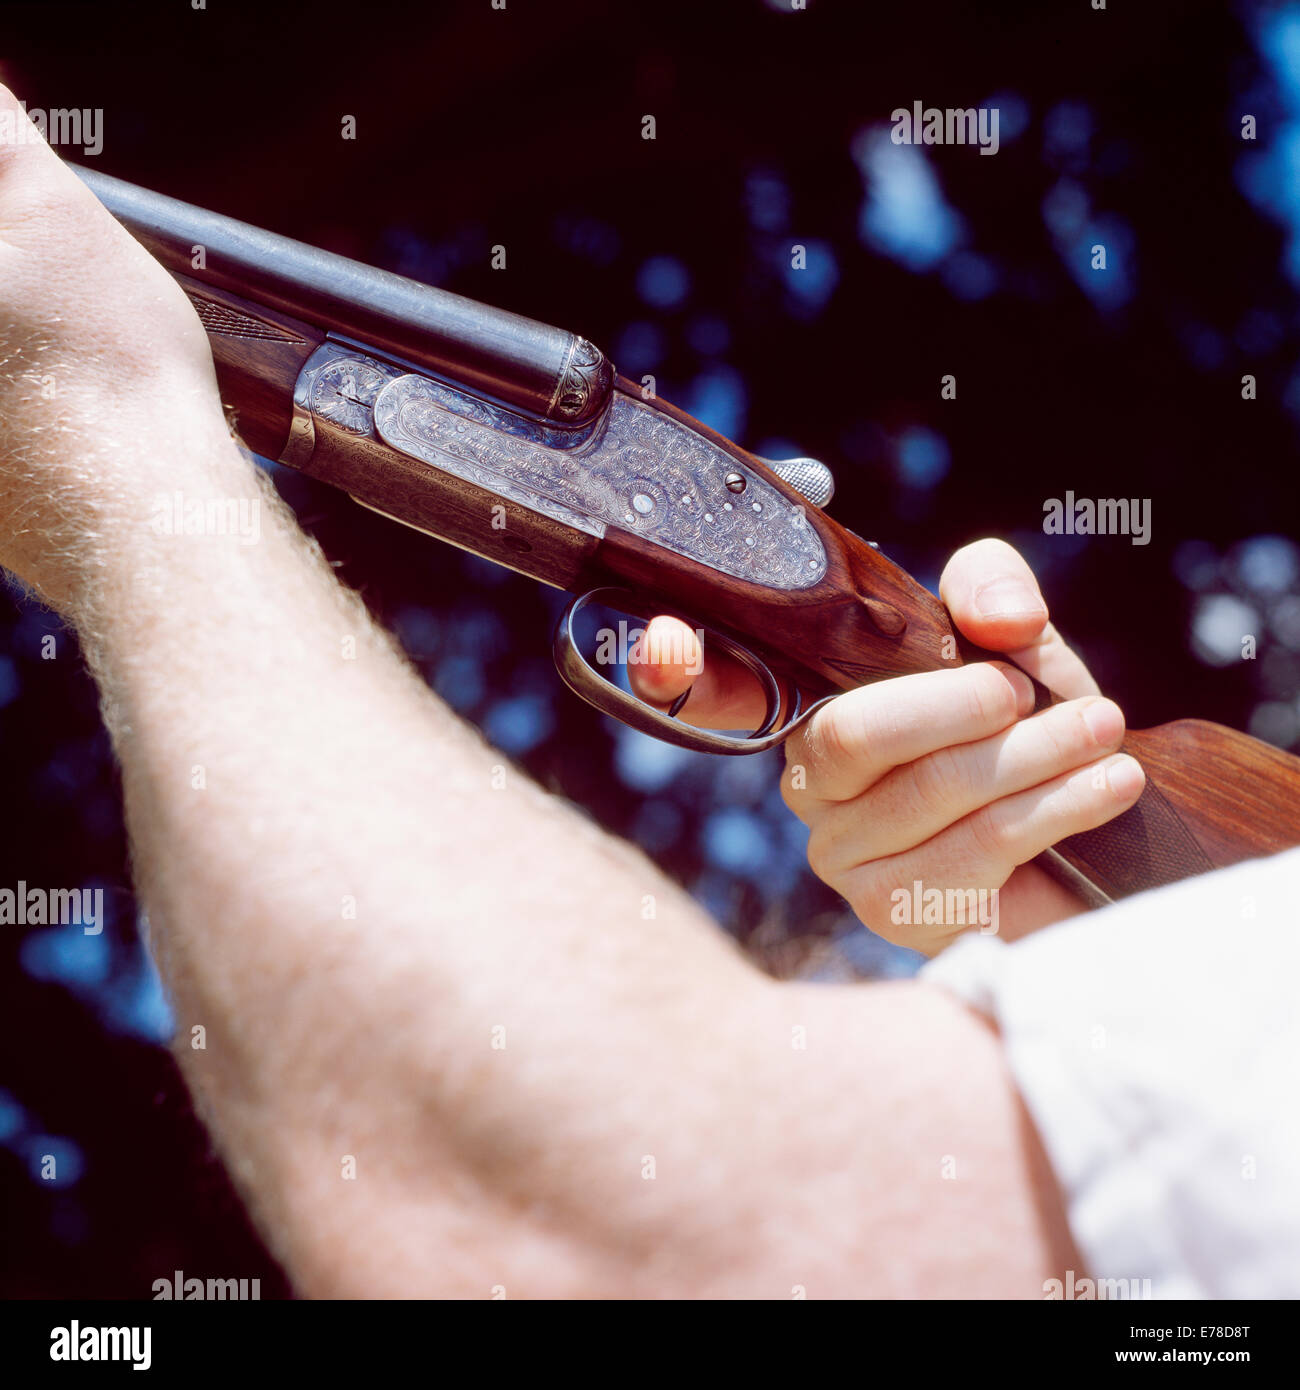 A double barreled Shotgun is pointed into the air with the operator using his finger to pull the trigger. - Stock Image